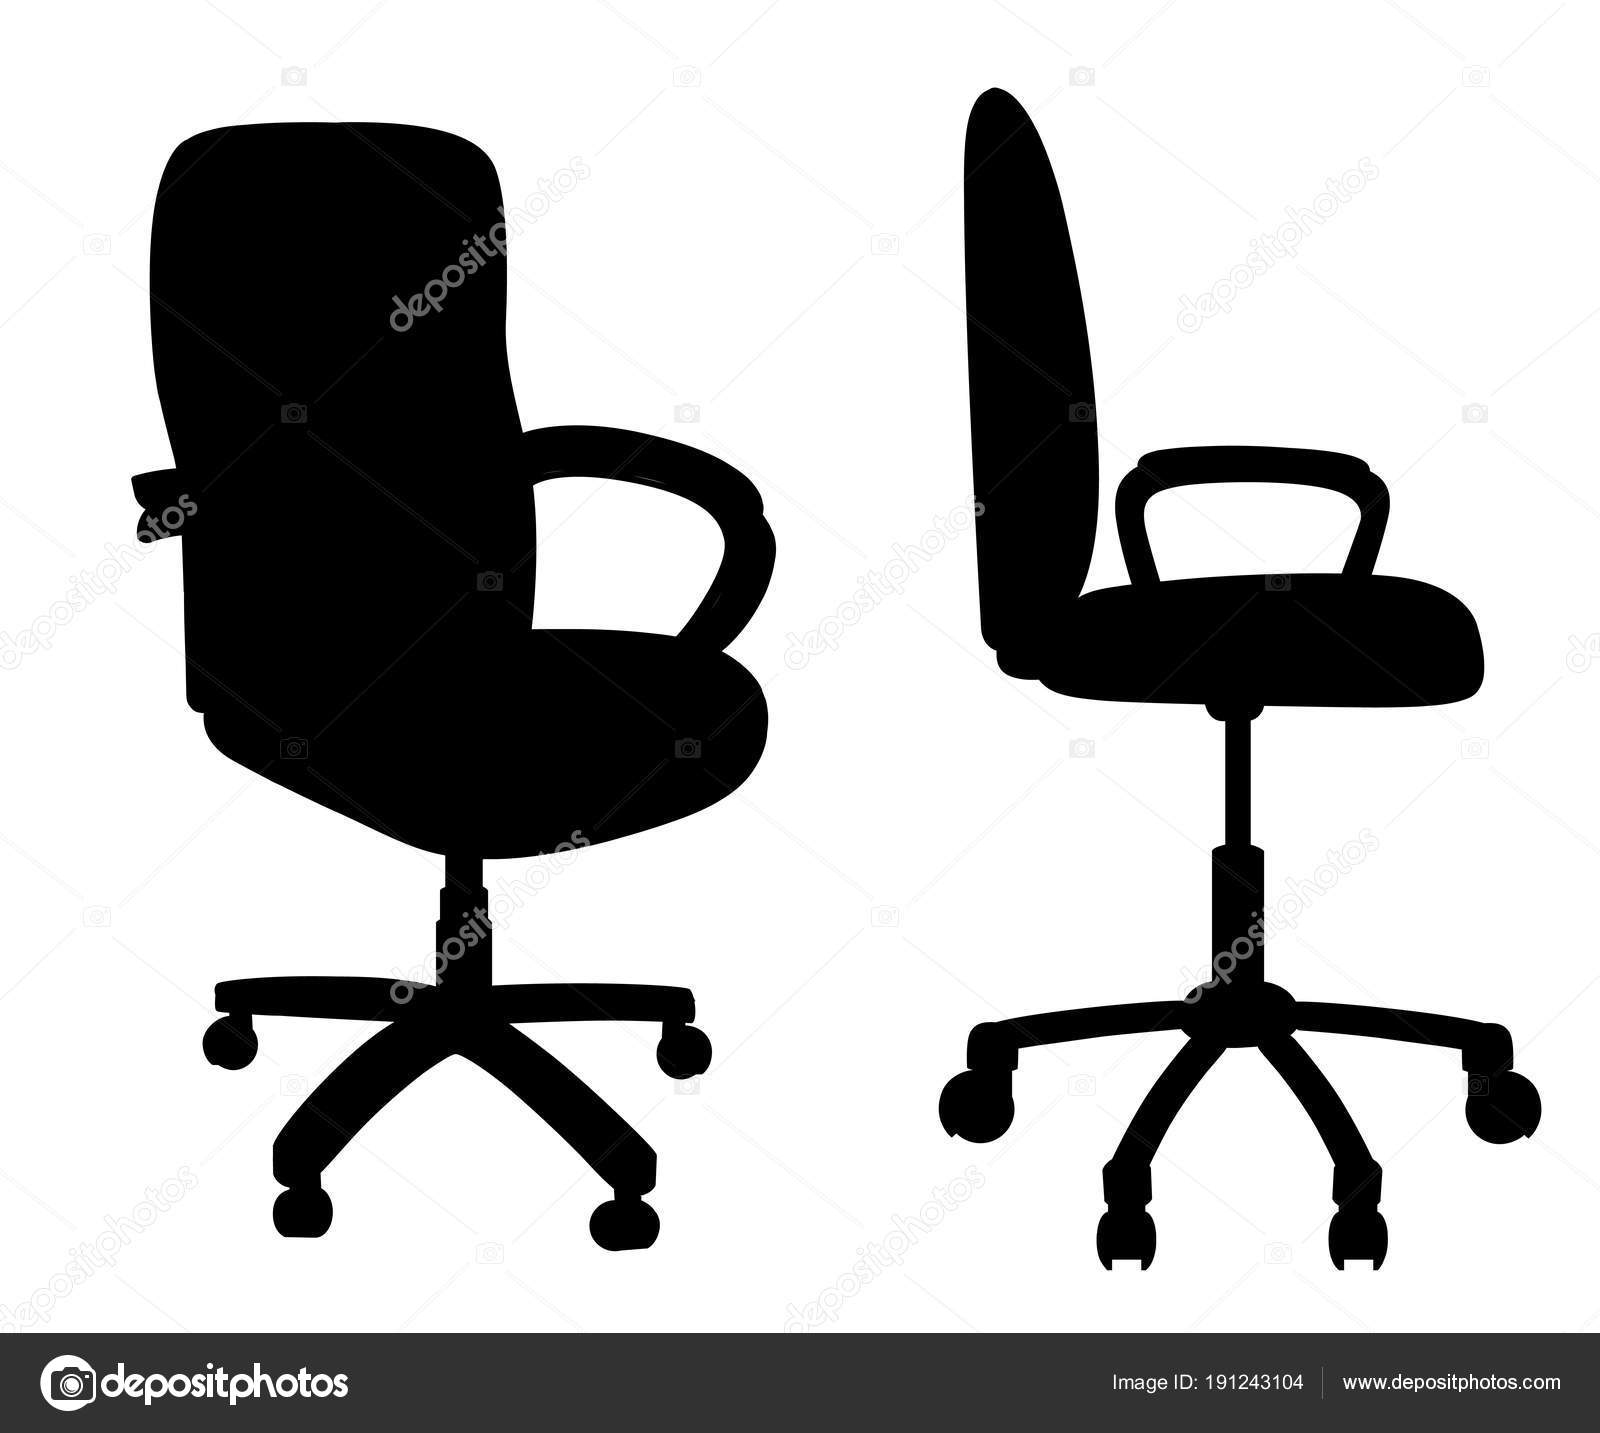 office chair illustration metal chairs and table black isolated on white background empty seat for employee ergonomic armchair executive director furniture icon vector